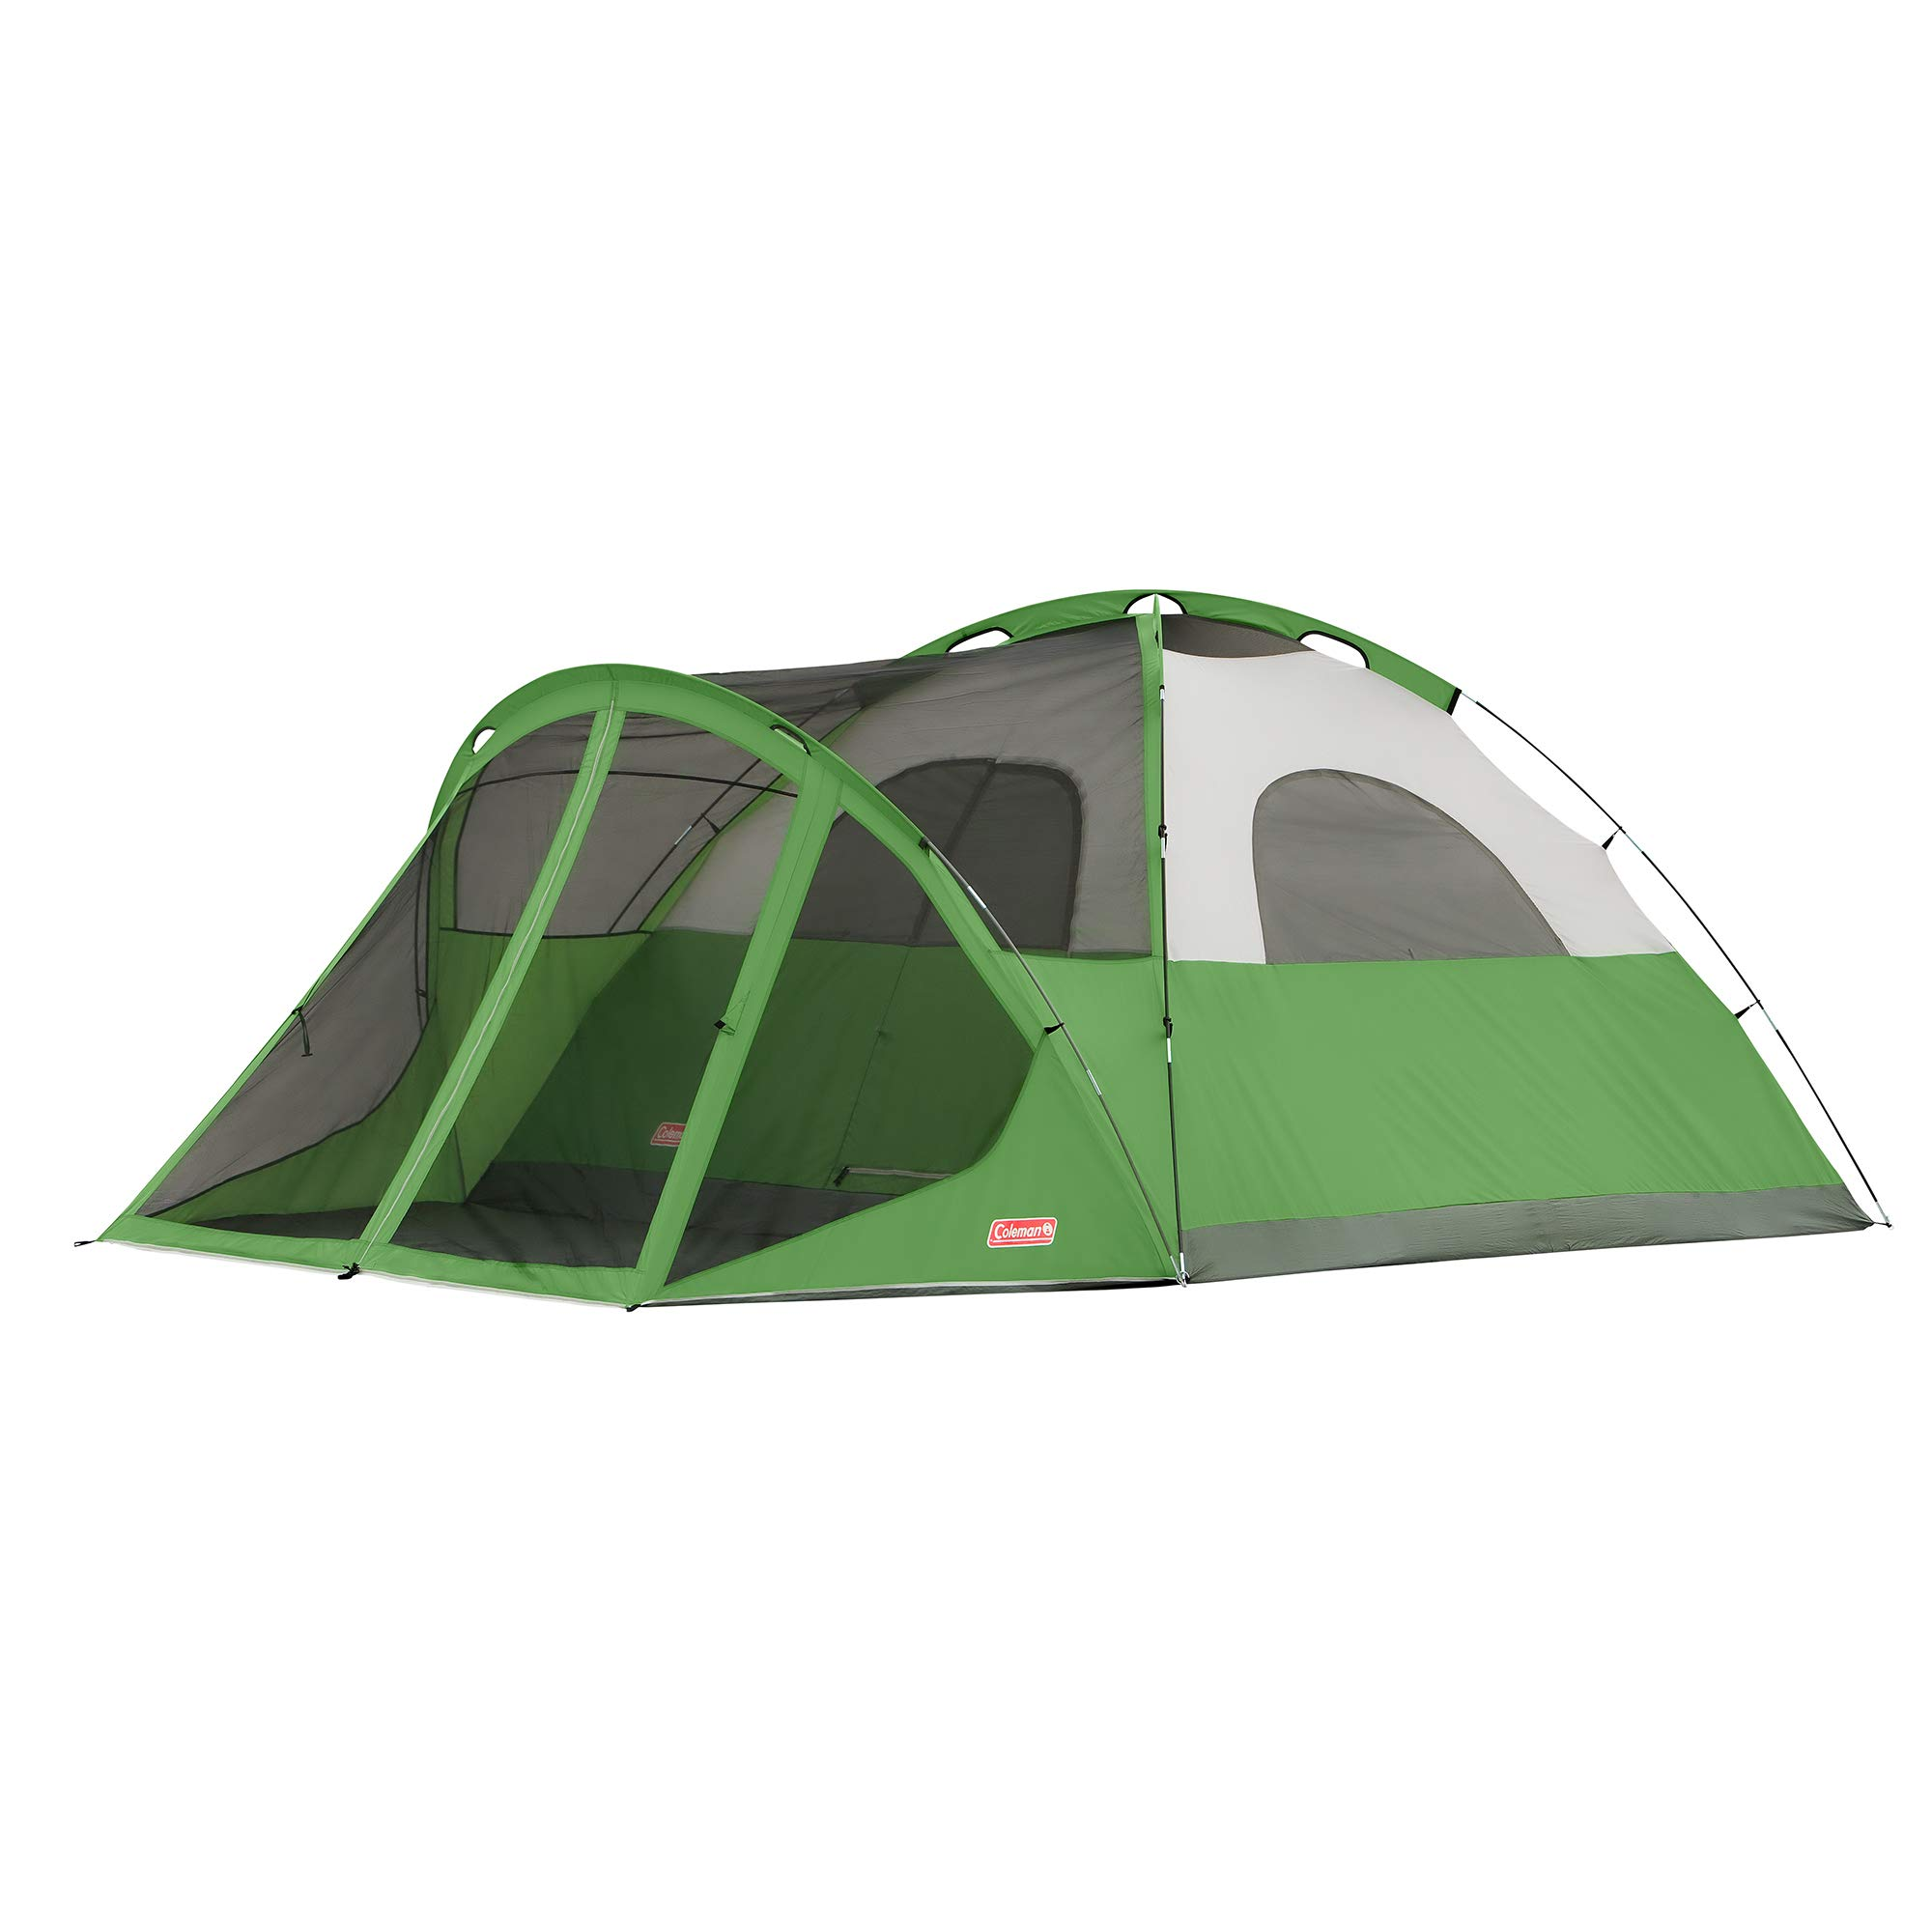 Coleman Dome Tent With Screen Room Evanston Camping Tent